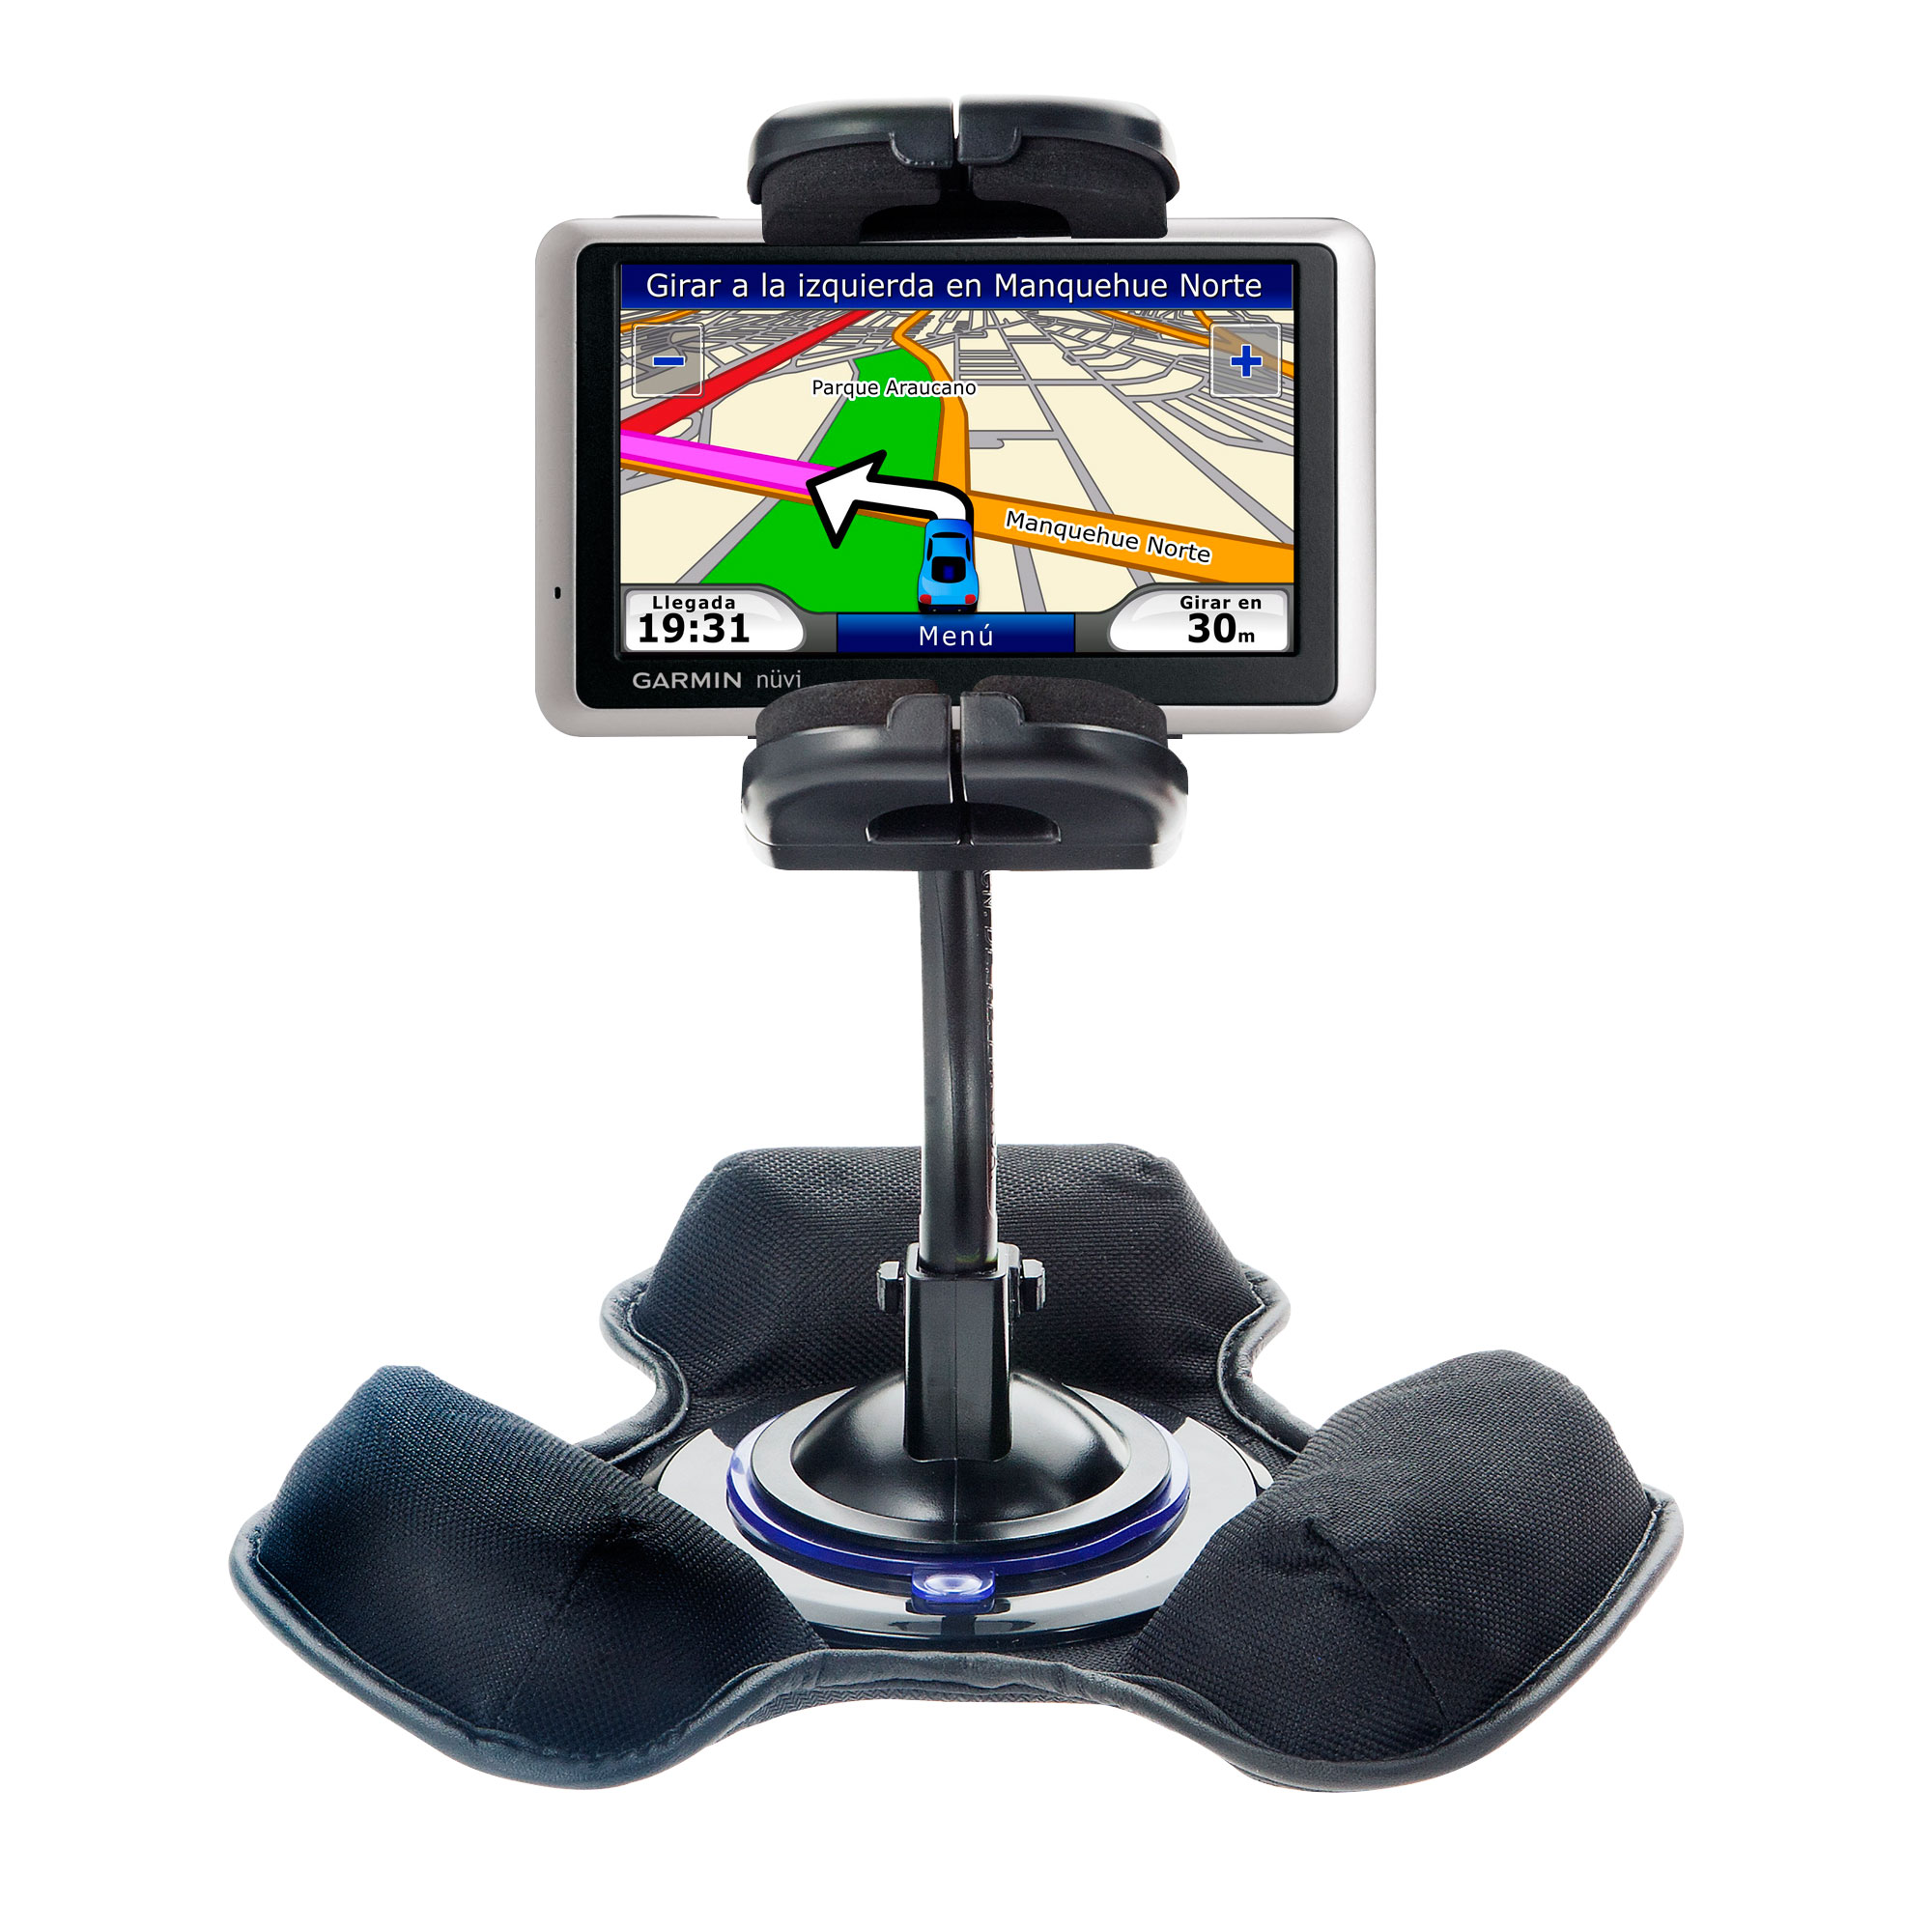 Dash and Windshield Holder compatible with the Garmin Nuvi 1340